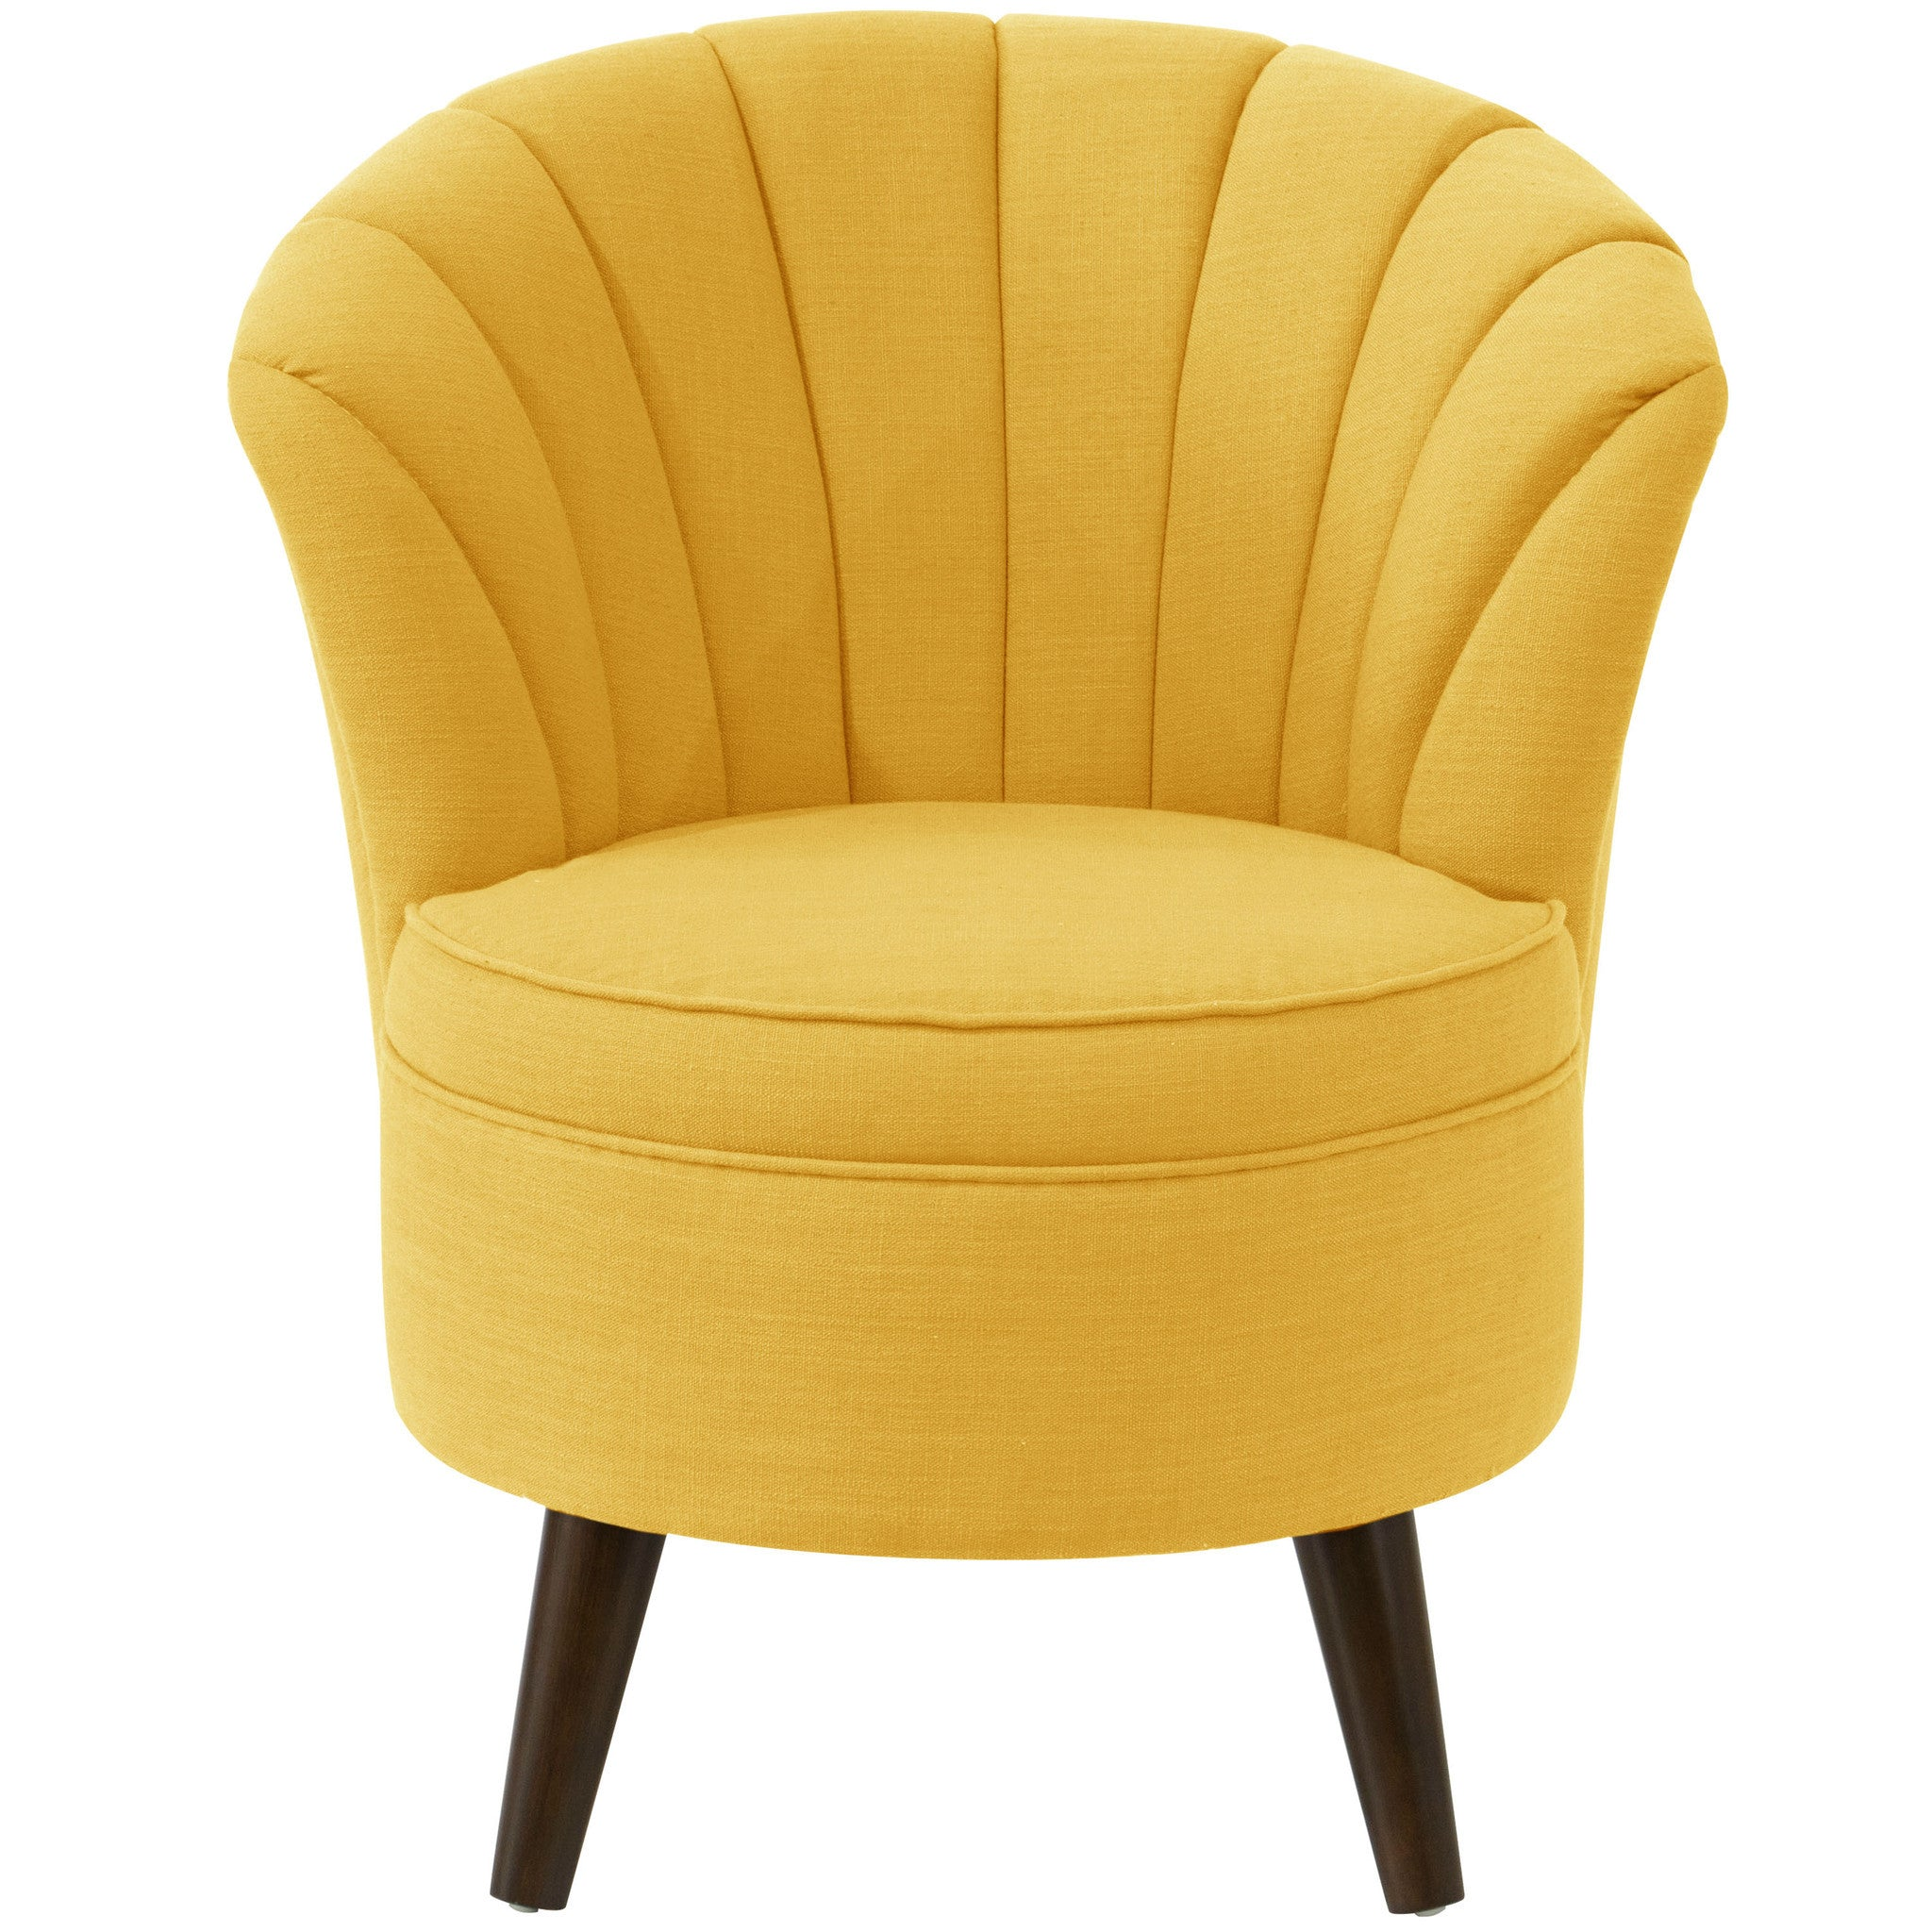 angelo HOME Channel Seam Barrel Chair in Linen French Yellow